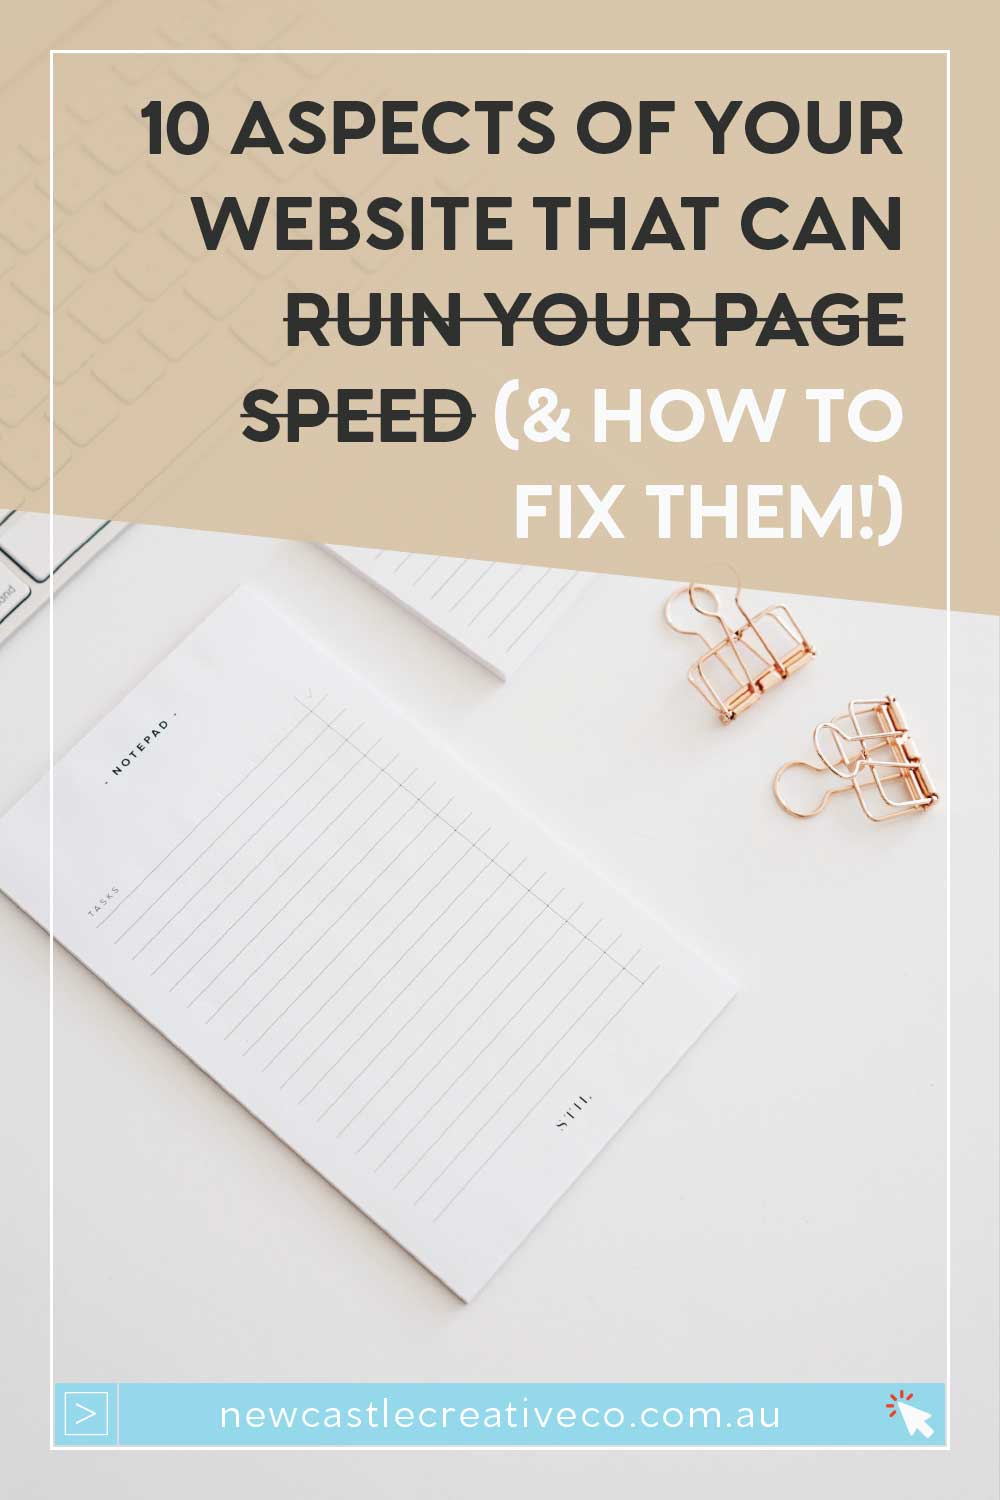 10 aspects of your website that can ruin your page speed & how to fix them | Newcastle Creative Co